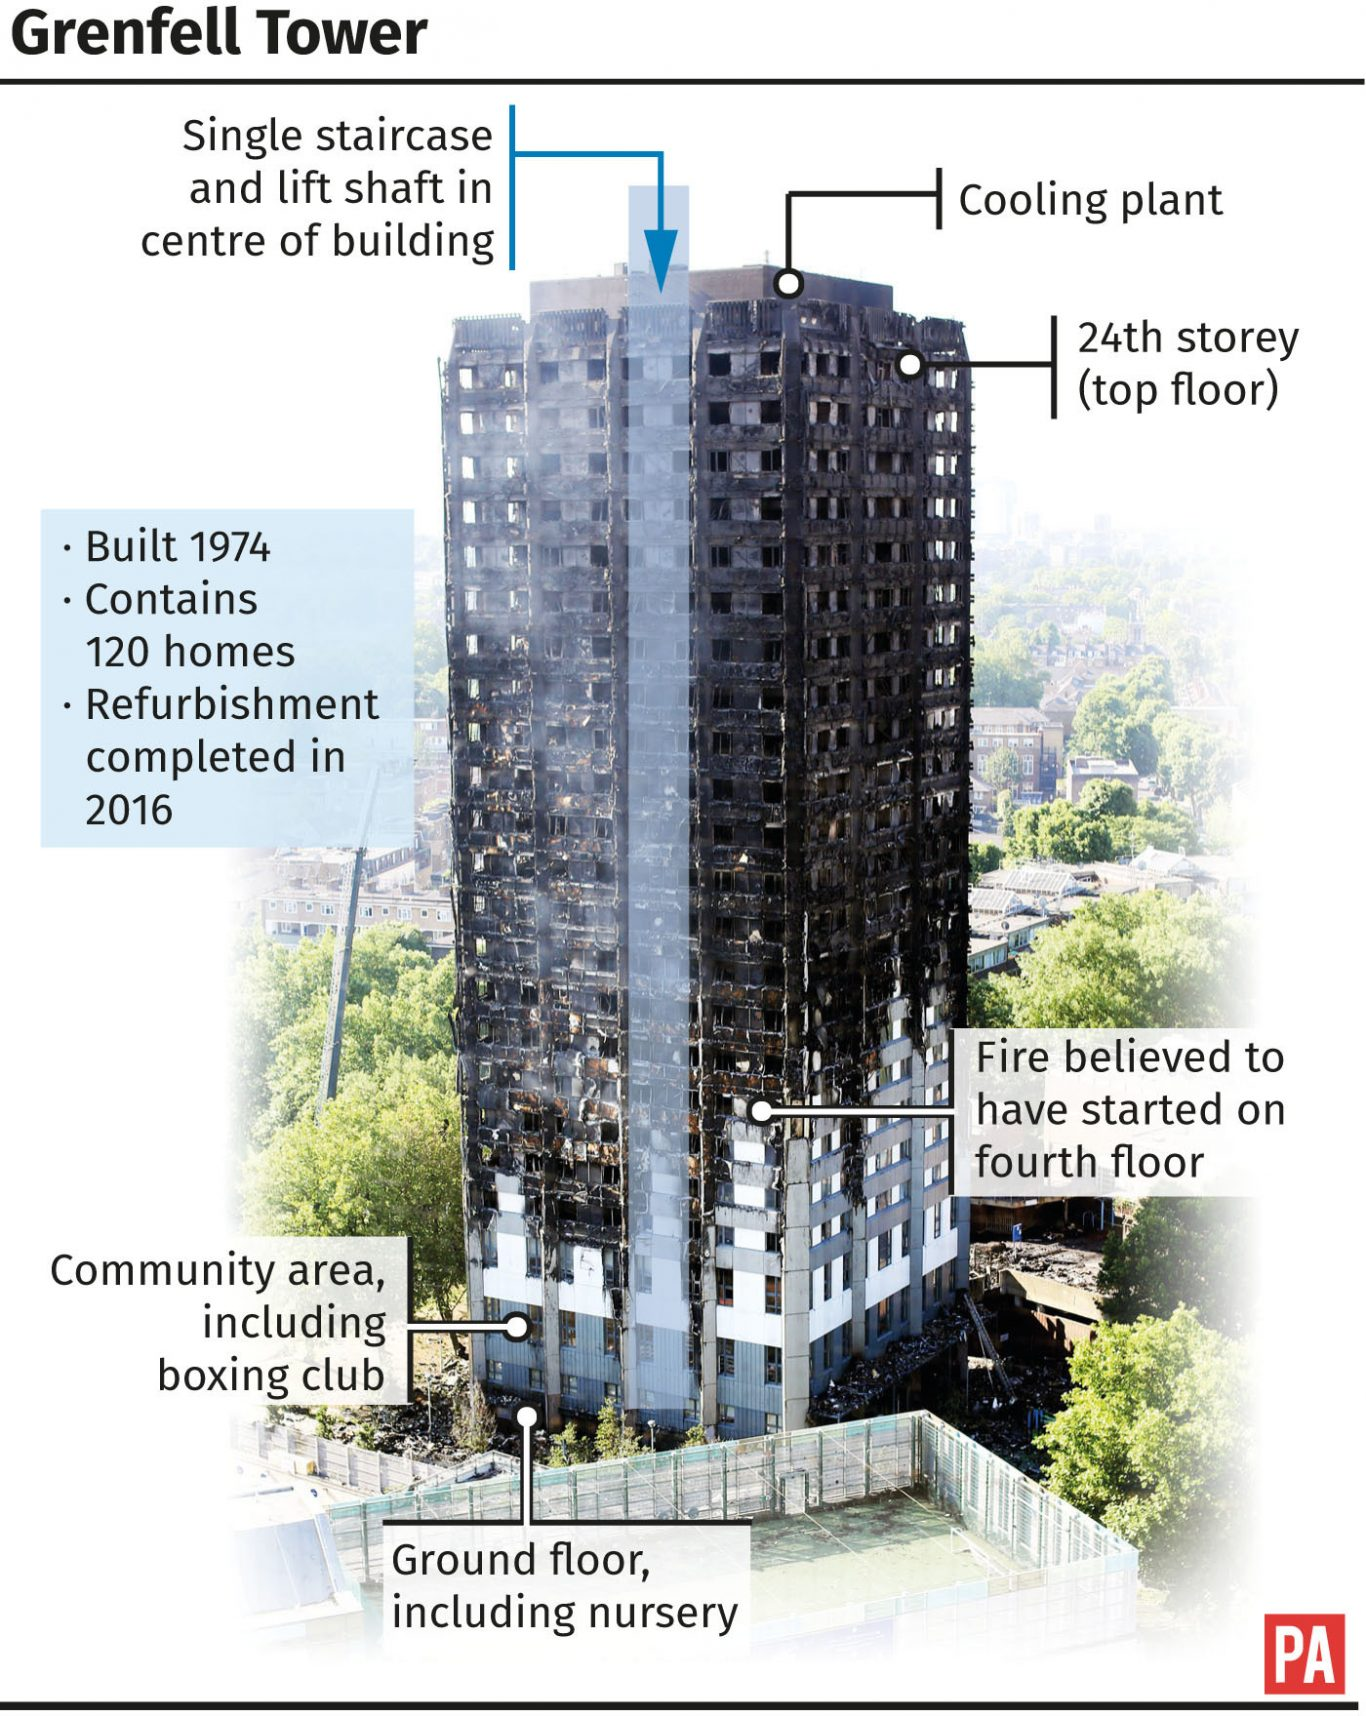 Some Grenfell Tower victims may never be identified, police say